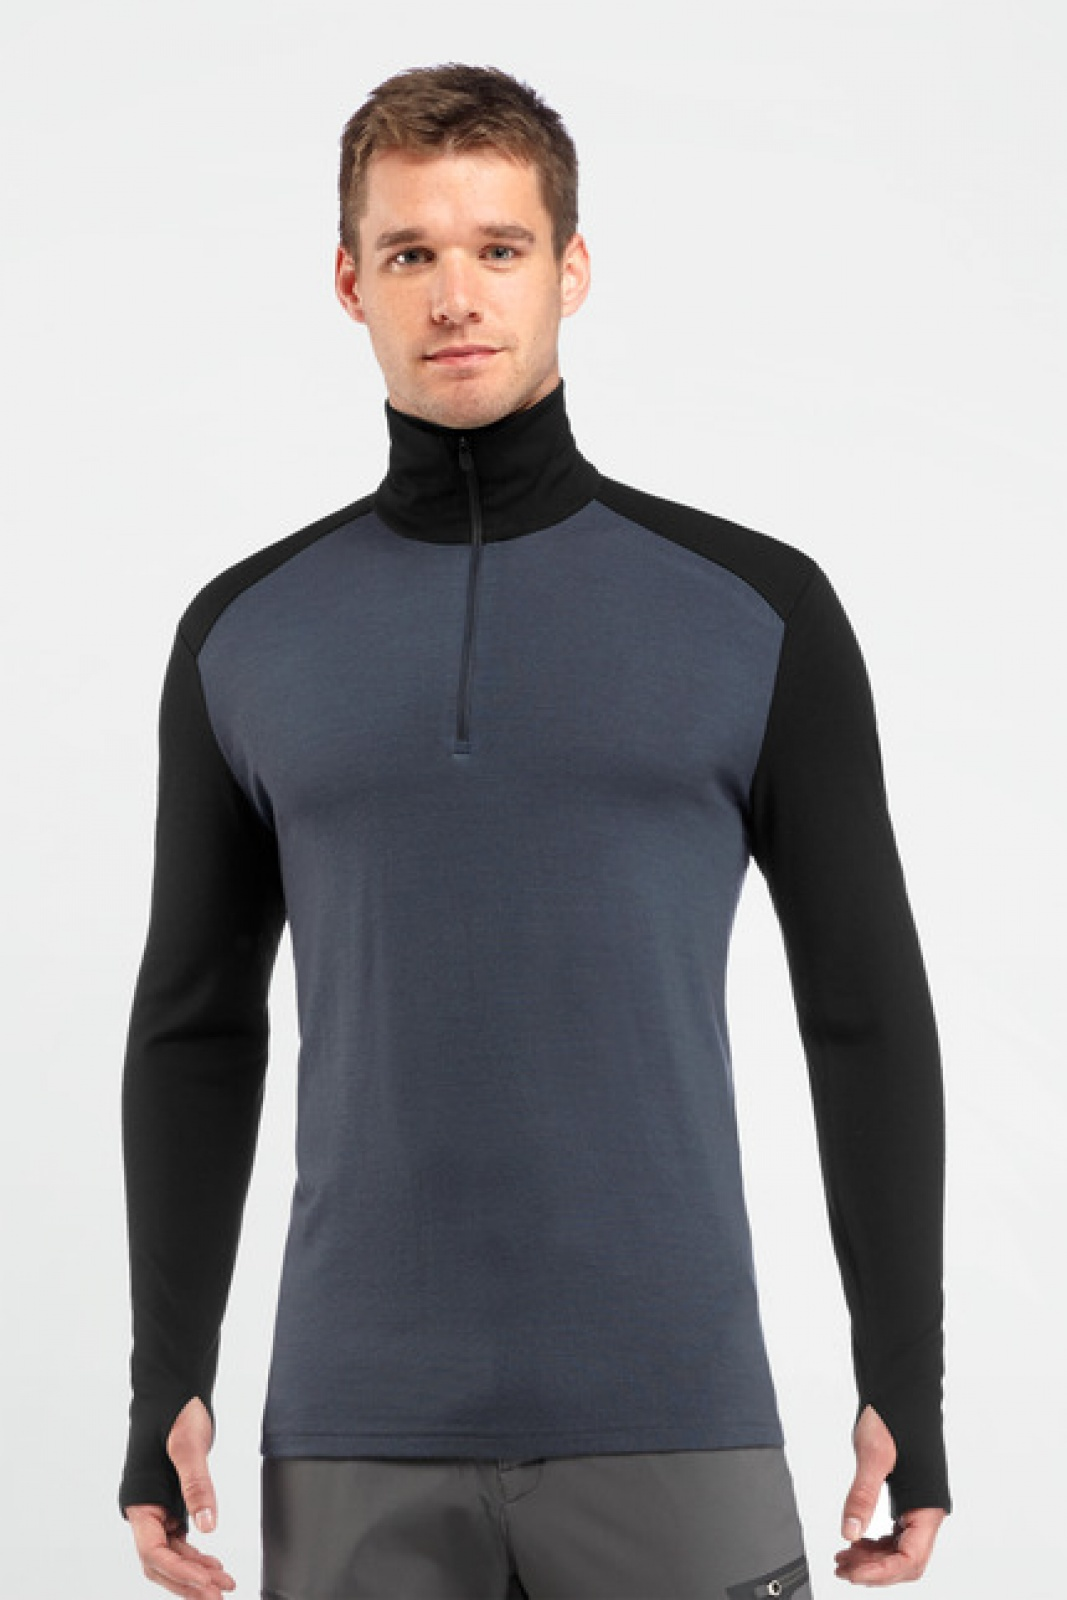 Футболка Icebreaker Tech Top LS Half Zip M Муж. шерстяная